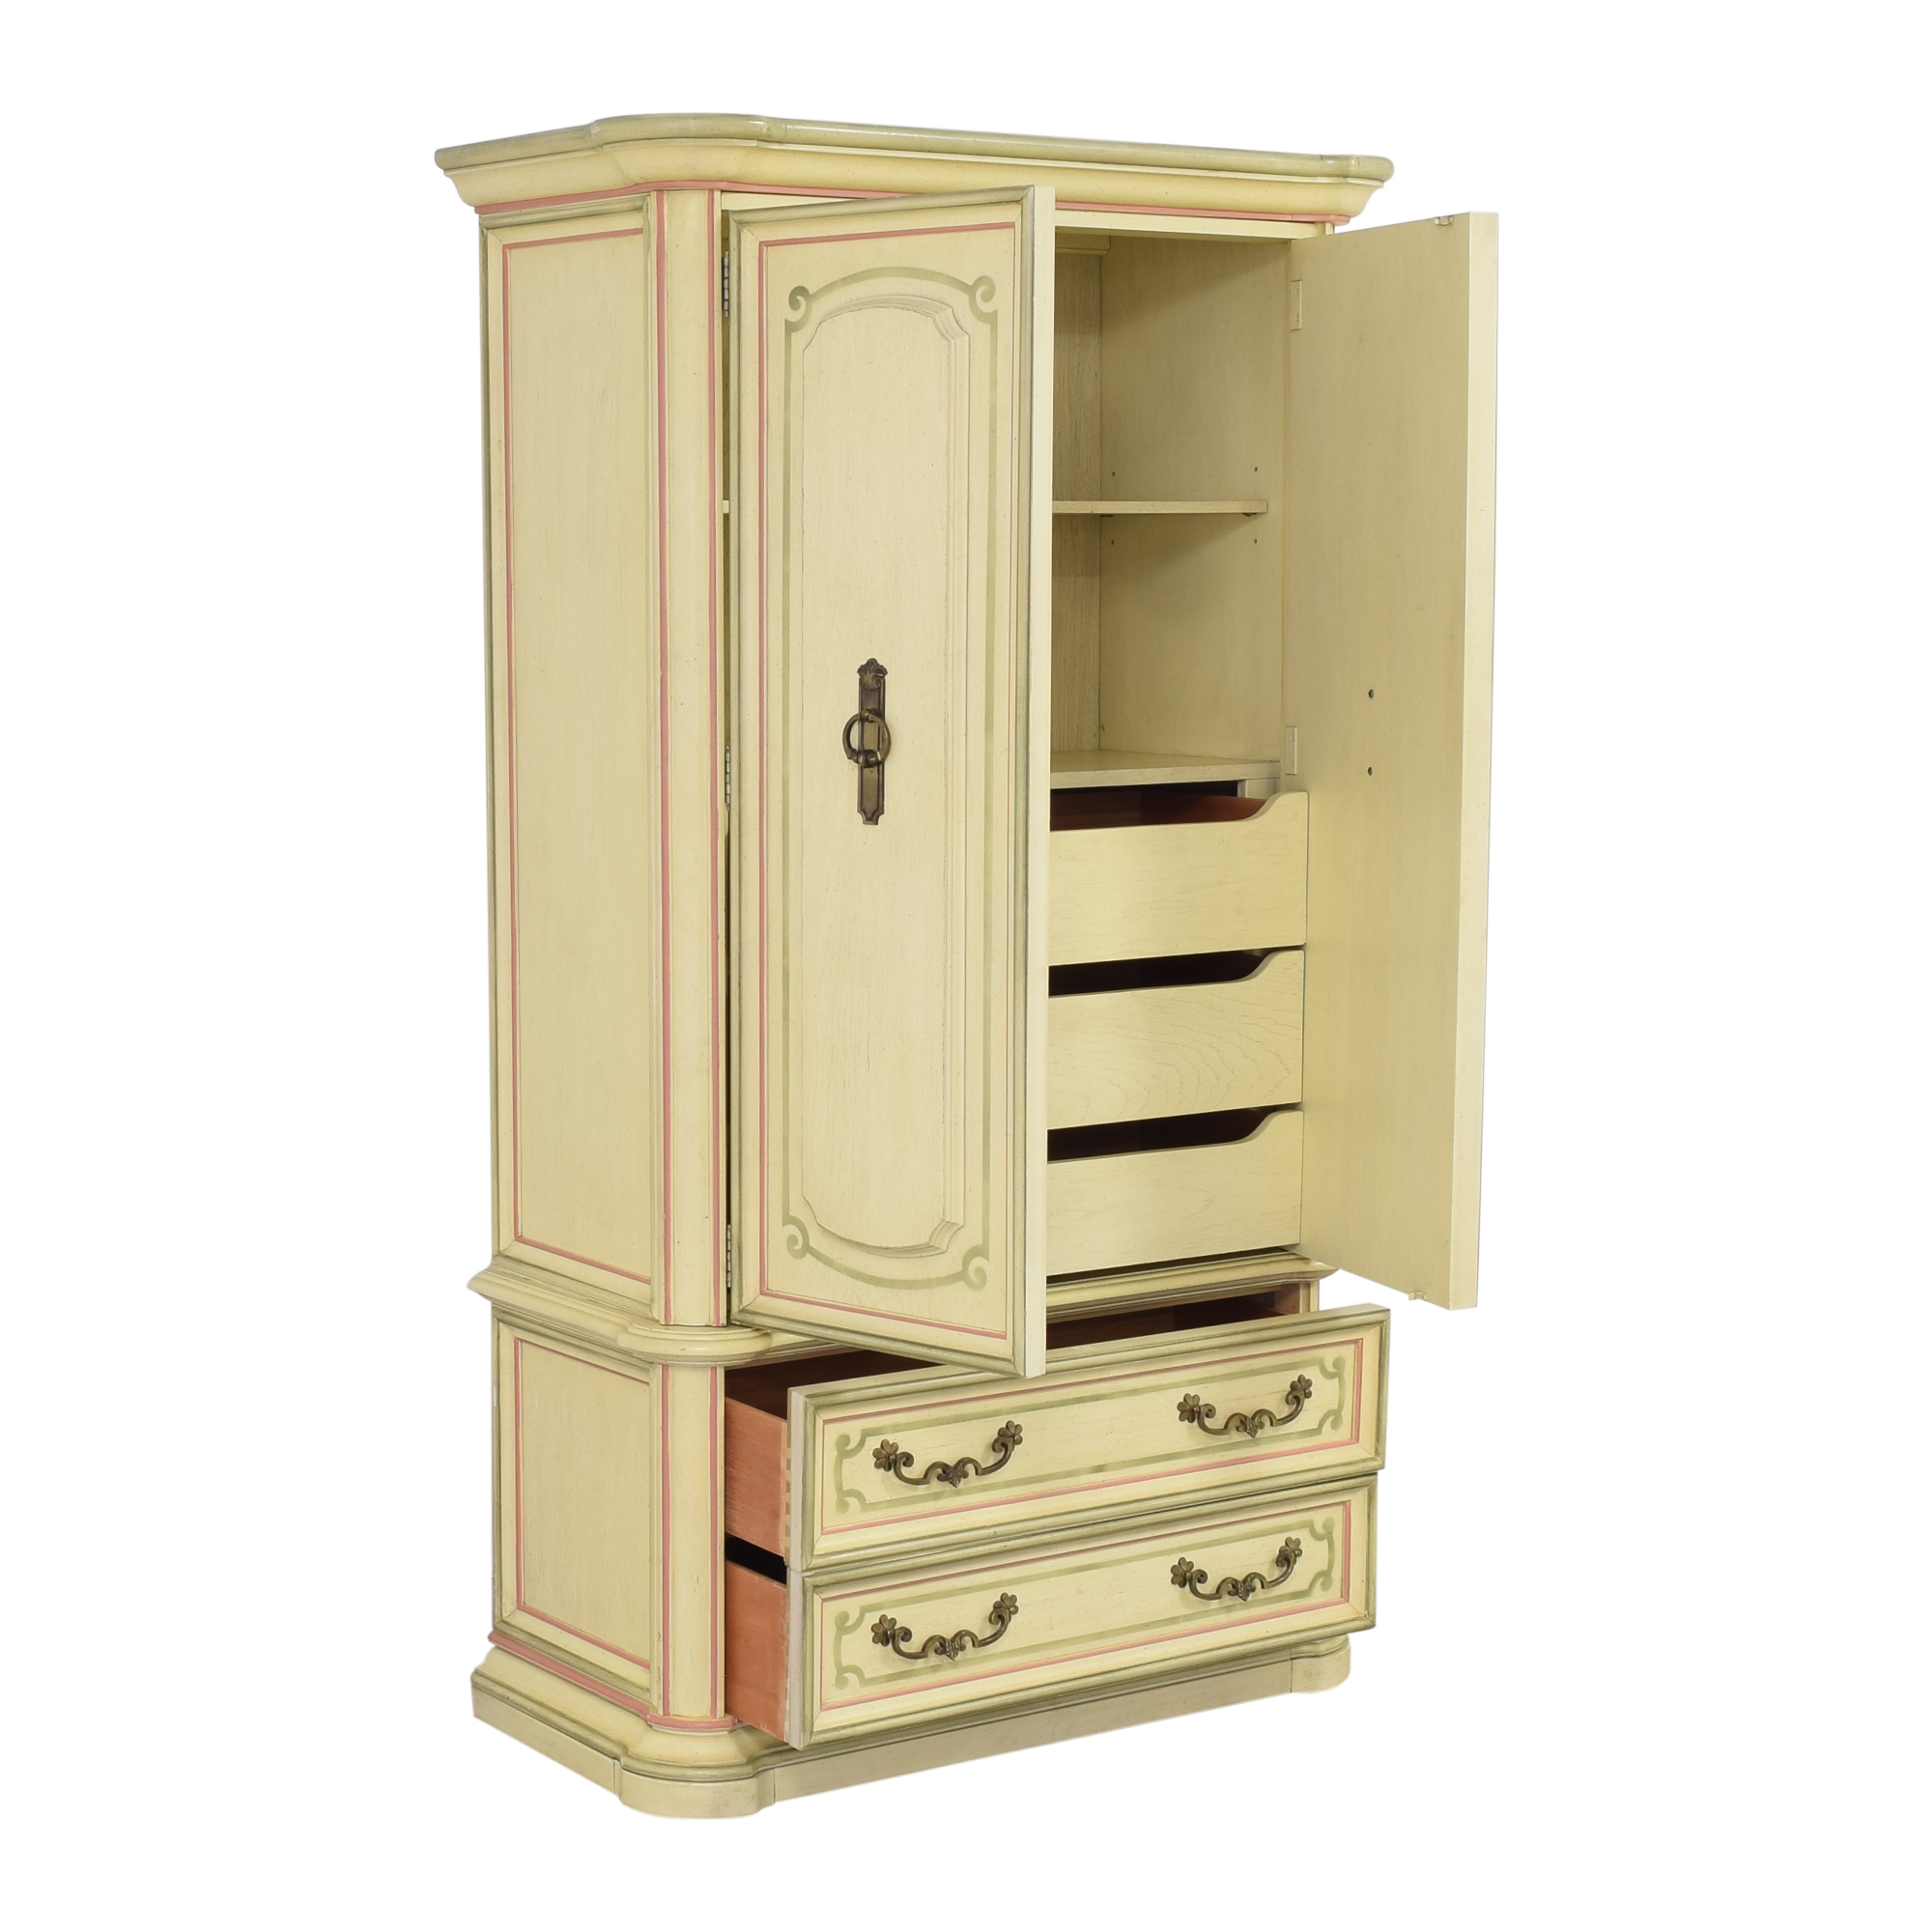 Stanley Furniture Stanley Furniture French Provincial-Style Armoire second hand